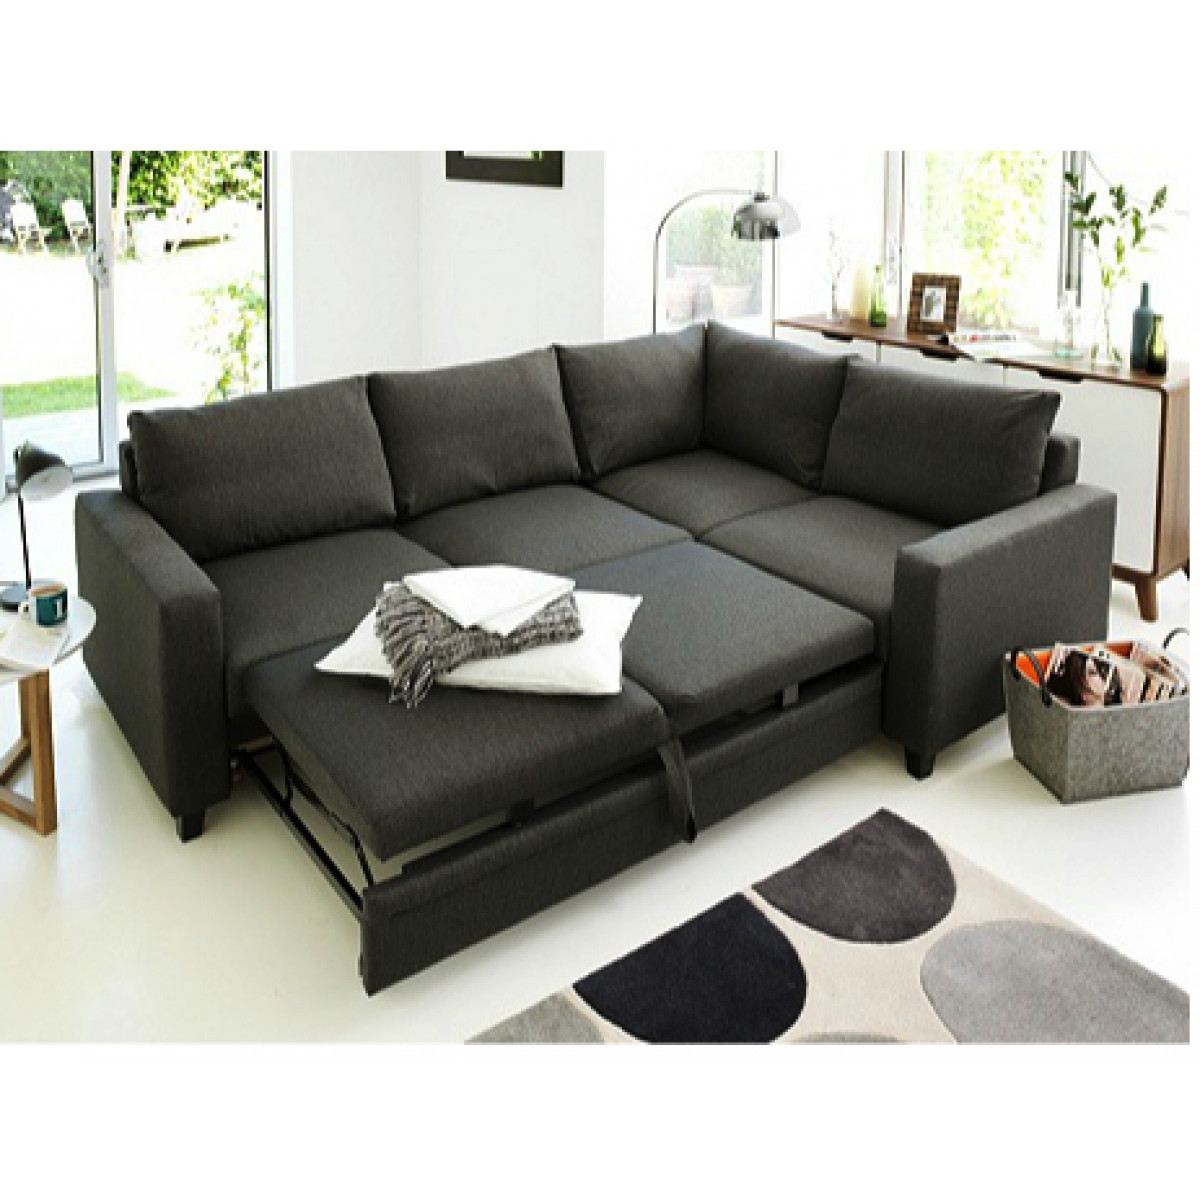 Large sofa bed ... archaicawful corner sofa s images concept for small rooms cheapest in XOCOXRO